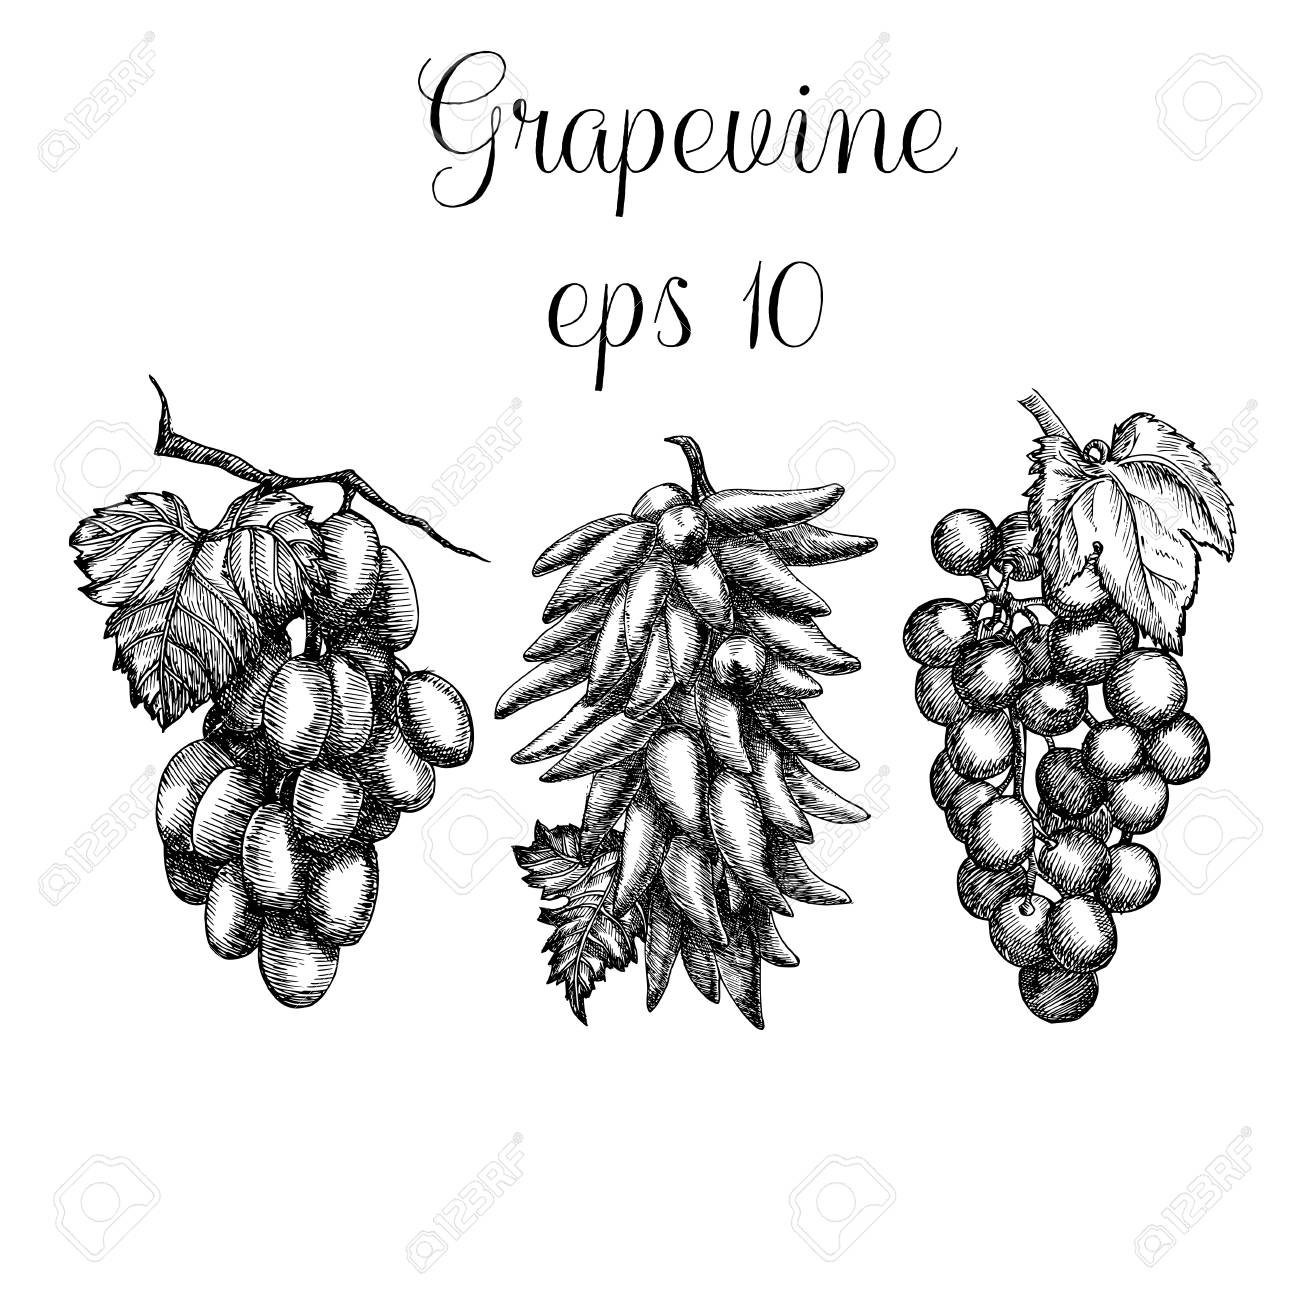 Hand Drawn Grapevine Royalty Free Cliparts, Vectors, And Stock ...